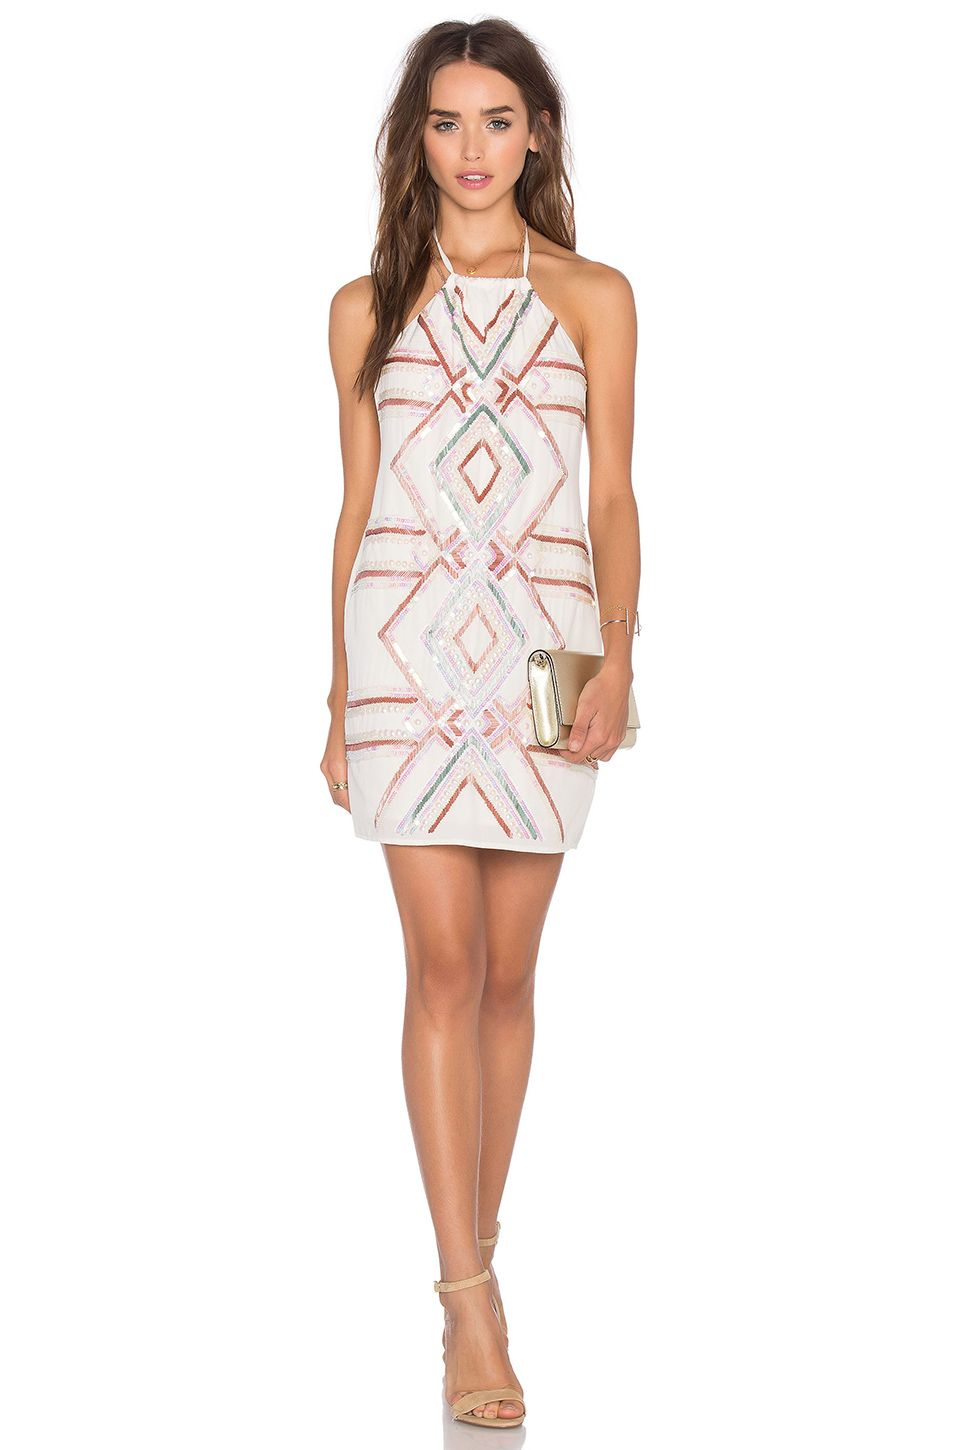 Check out our top cocktail dresses at revolve dressed up in